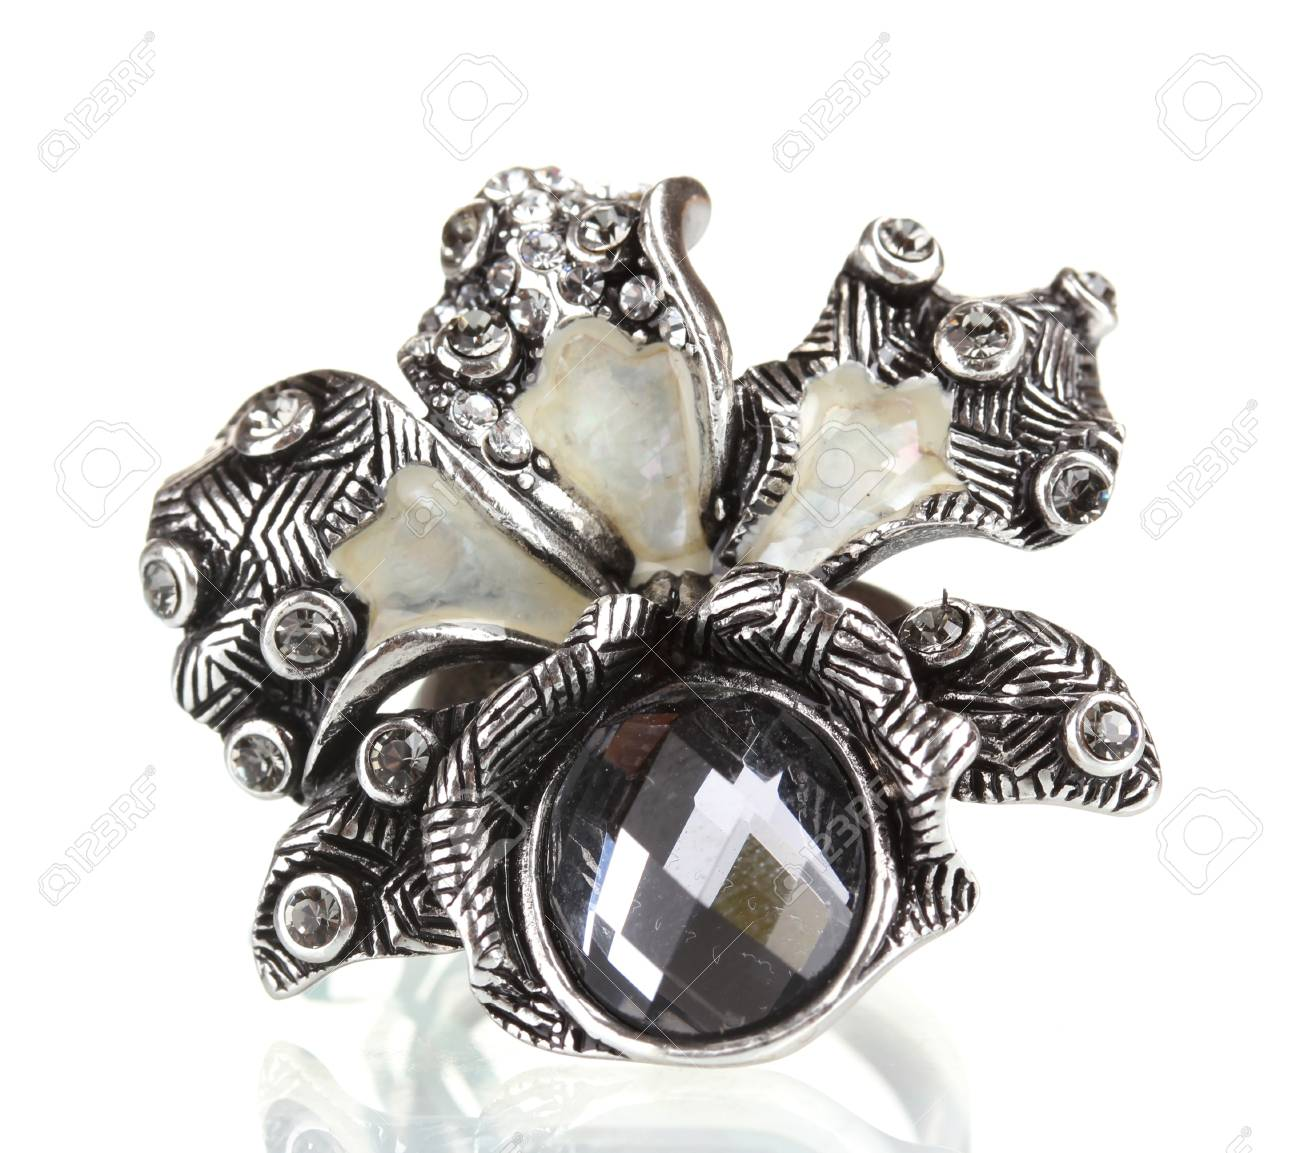 Silver ring with black gem isolated on white Stock Photo - 13998694